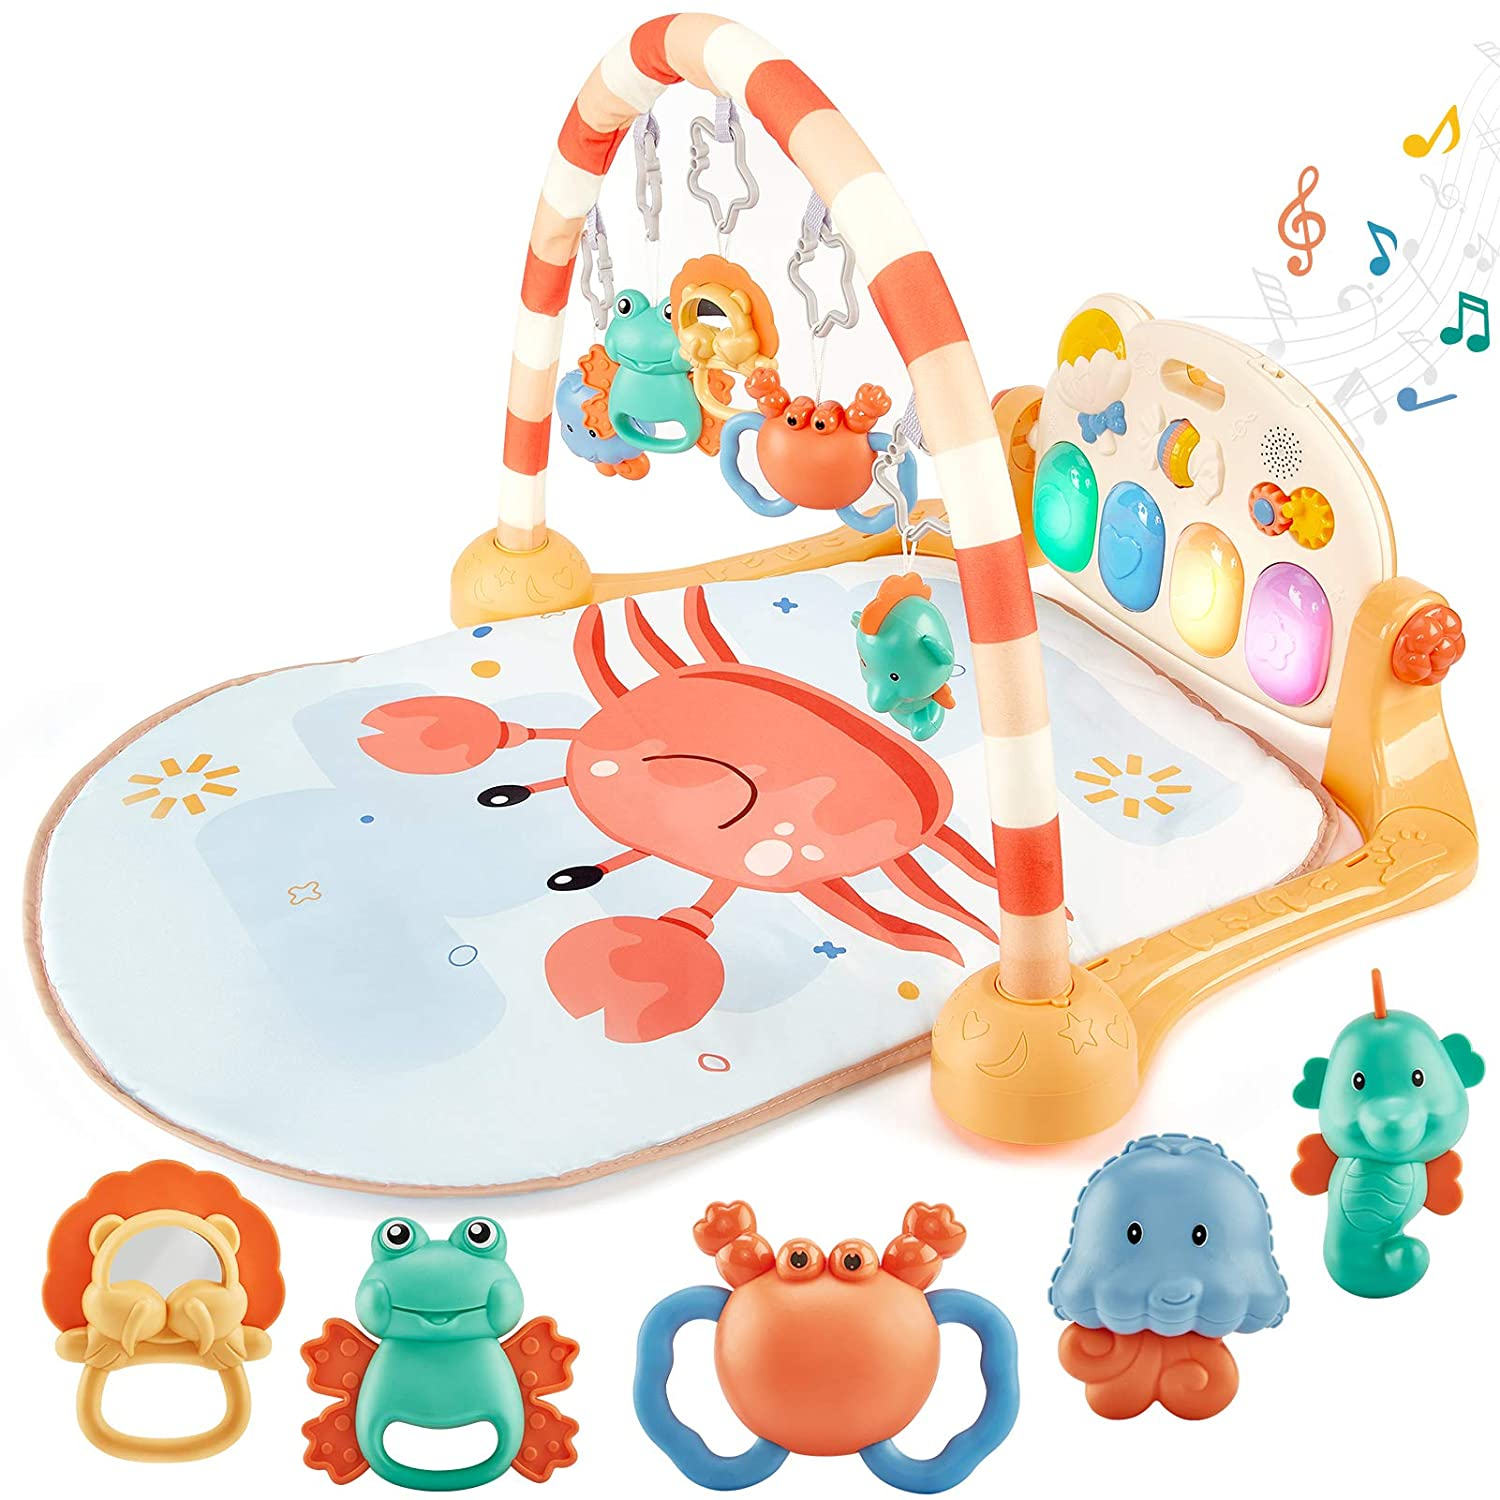 Baby Gym 2 Arch /& Toy Gift Activity Tummy Playmat Time Development Play Set